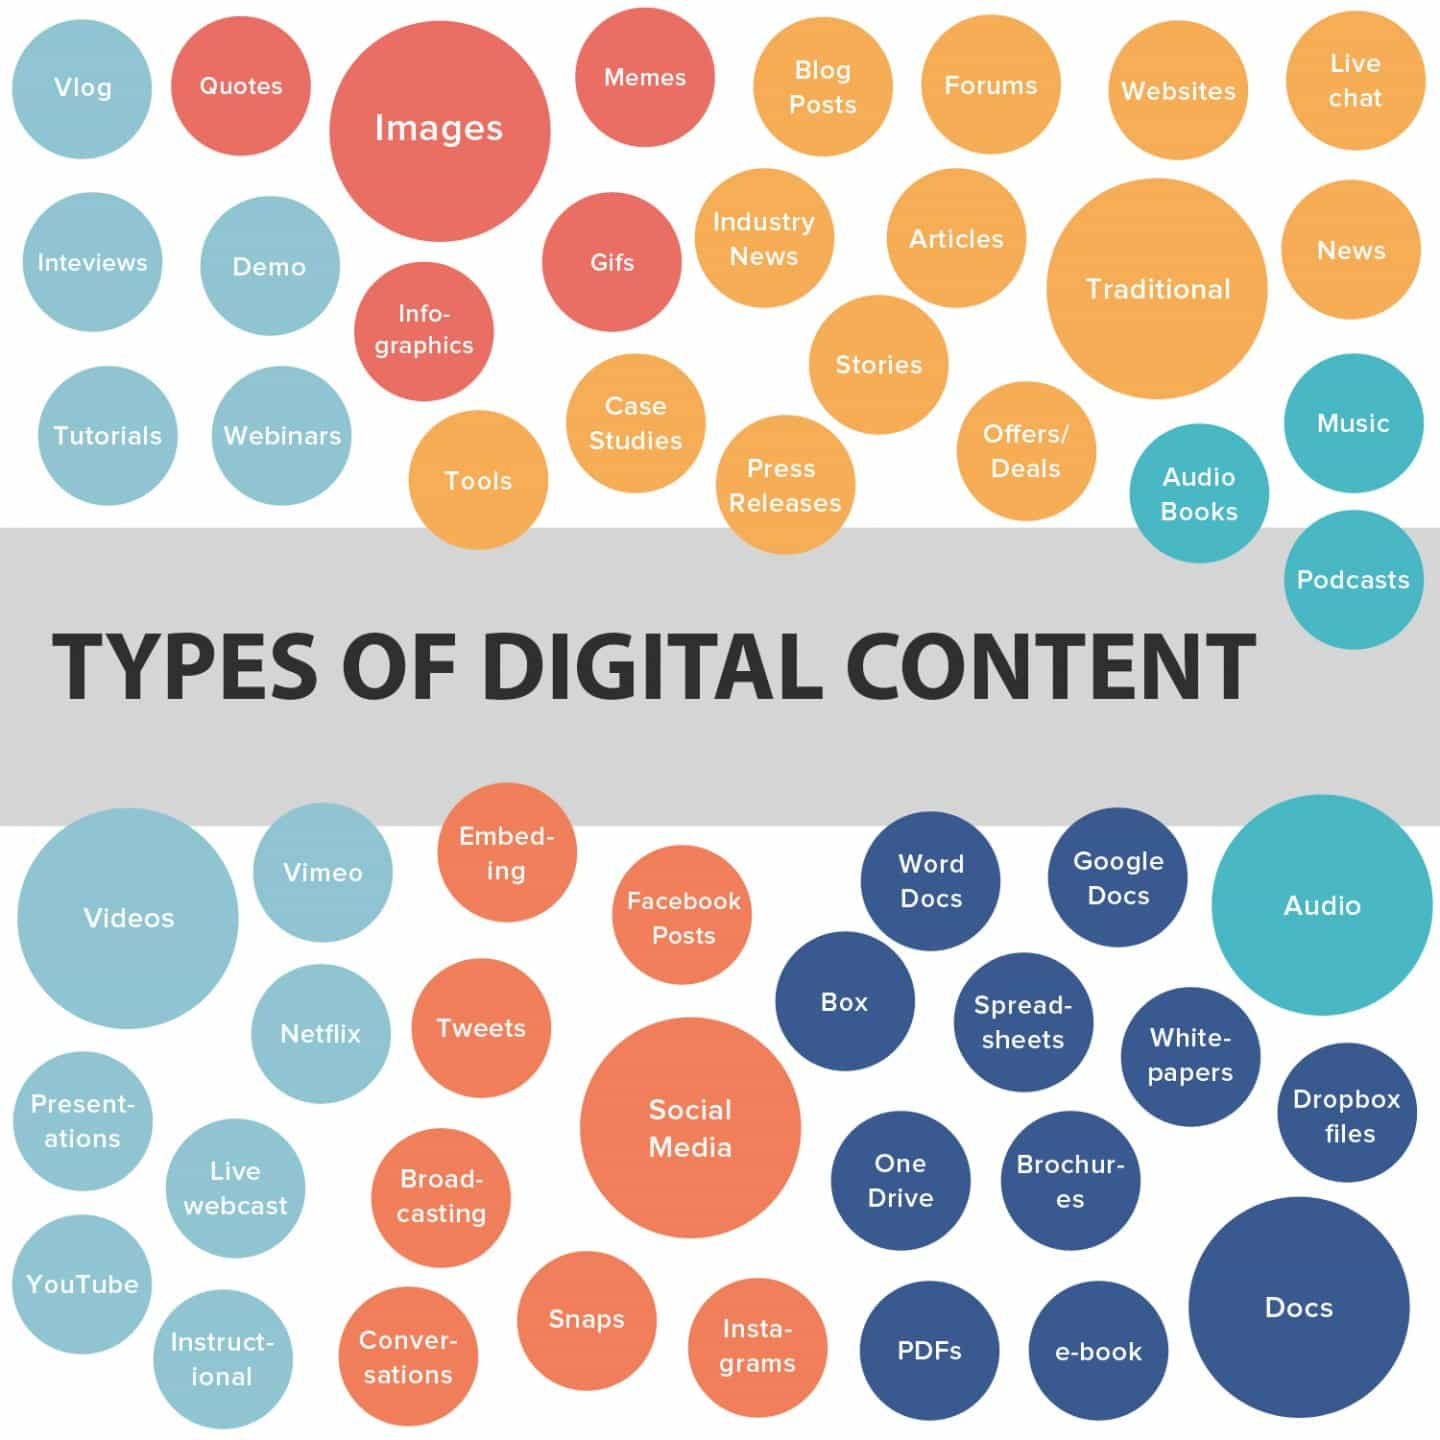 Types of Digital Content